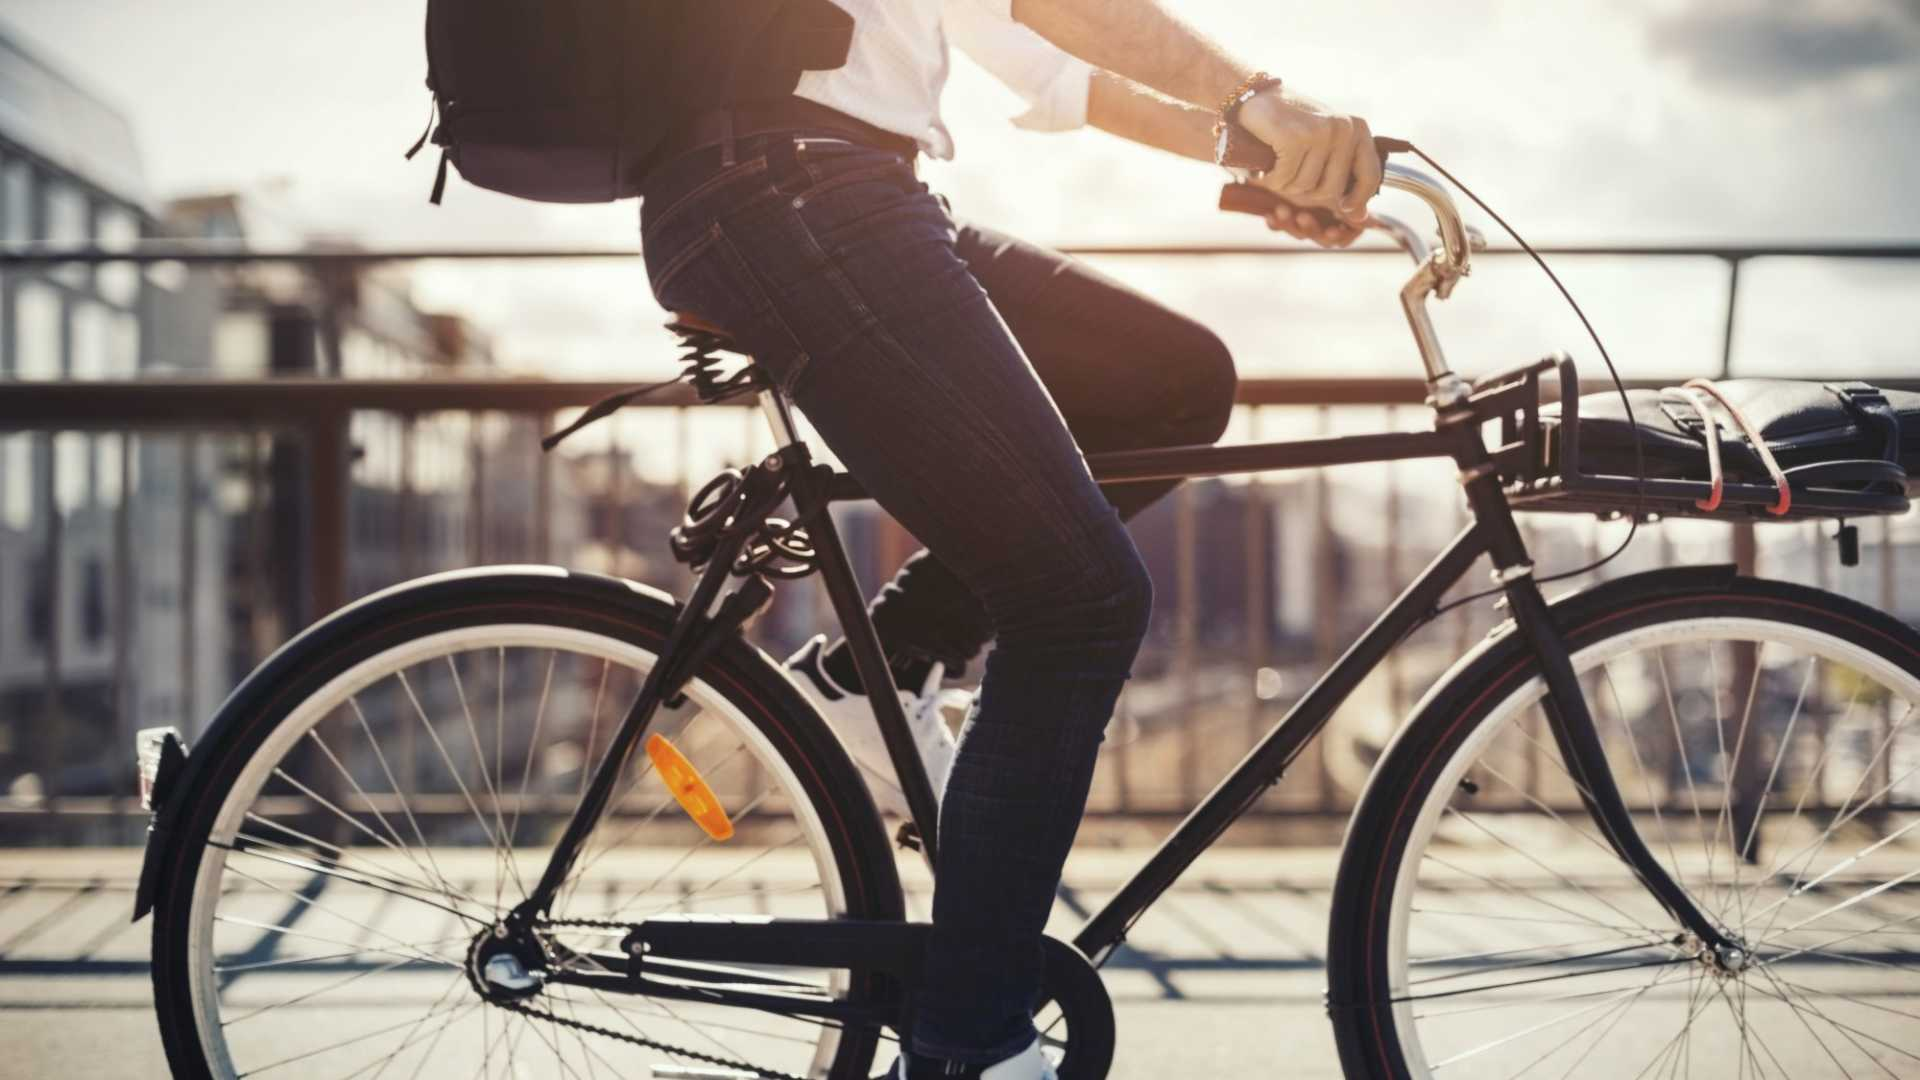 12 Incredibly Handy Products for Serious Bike Commuters